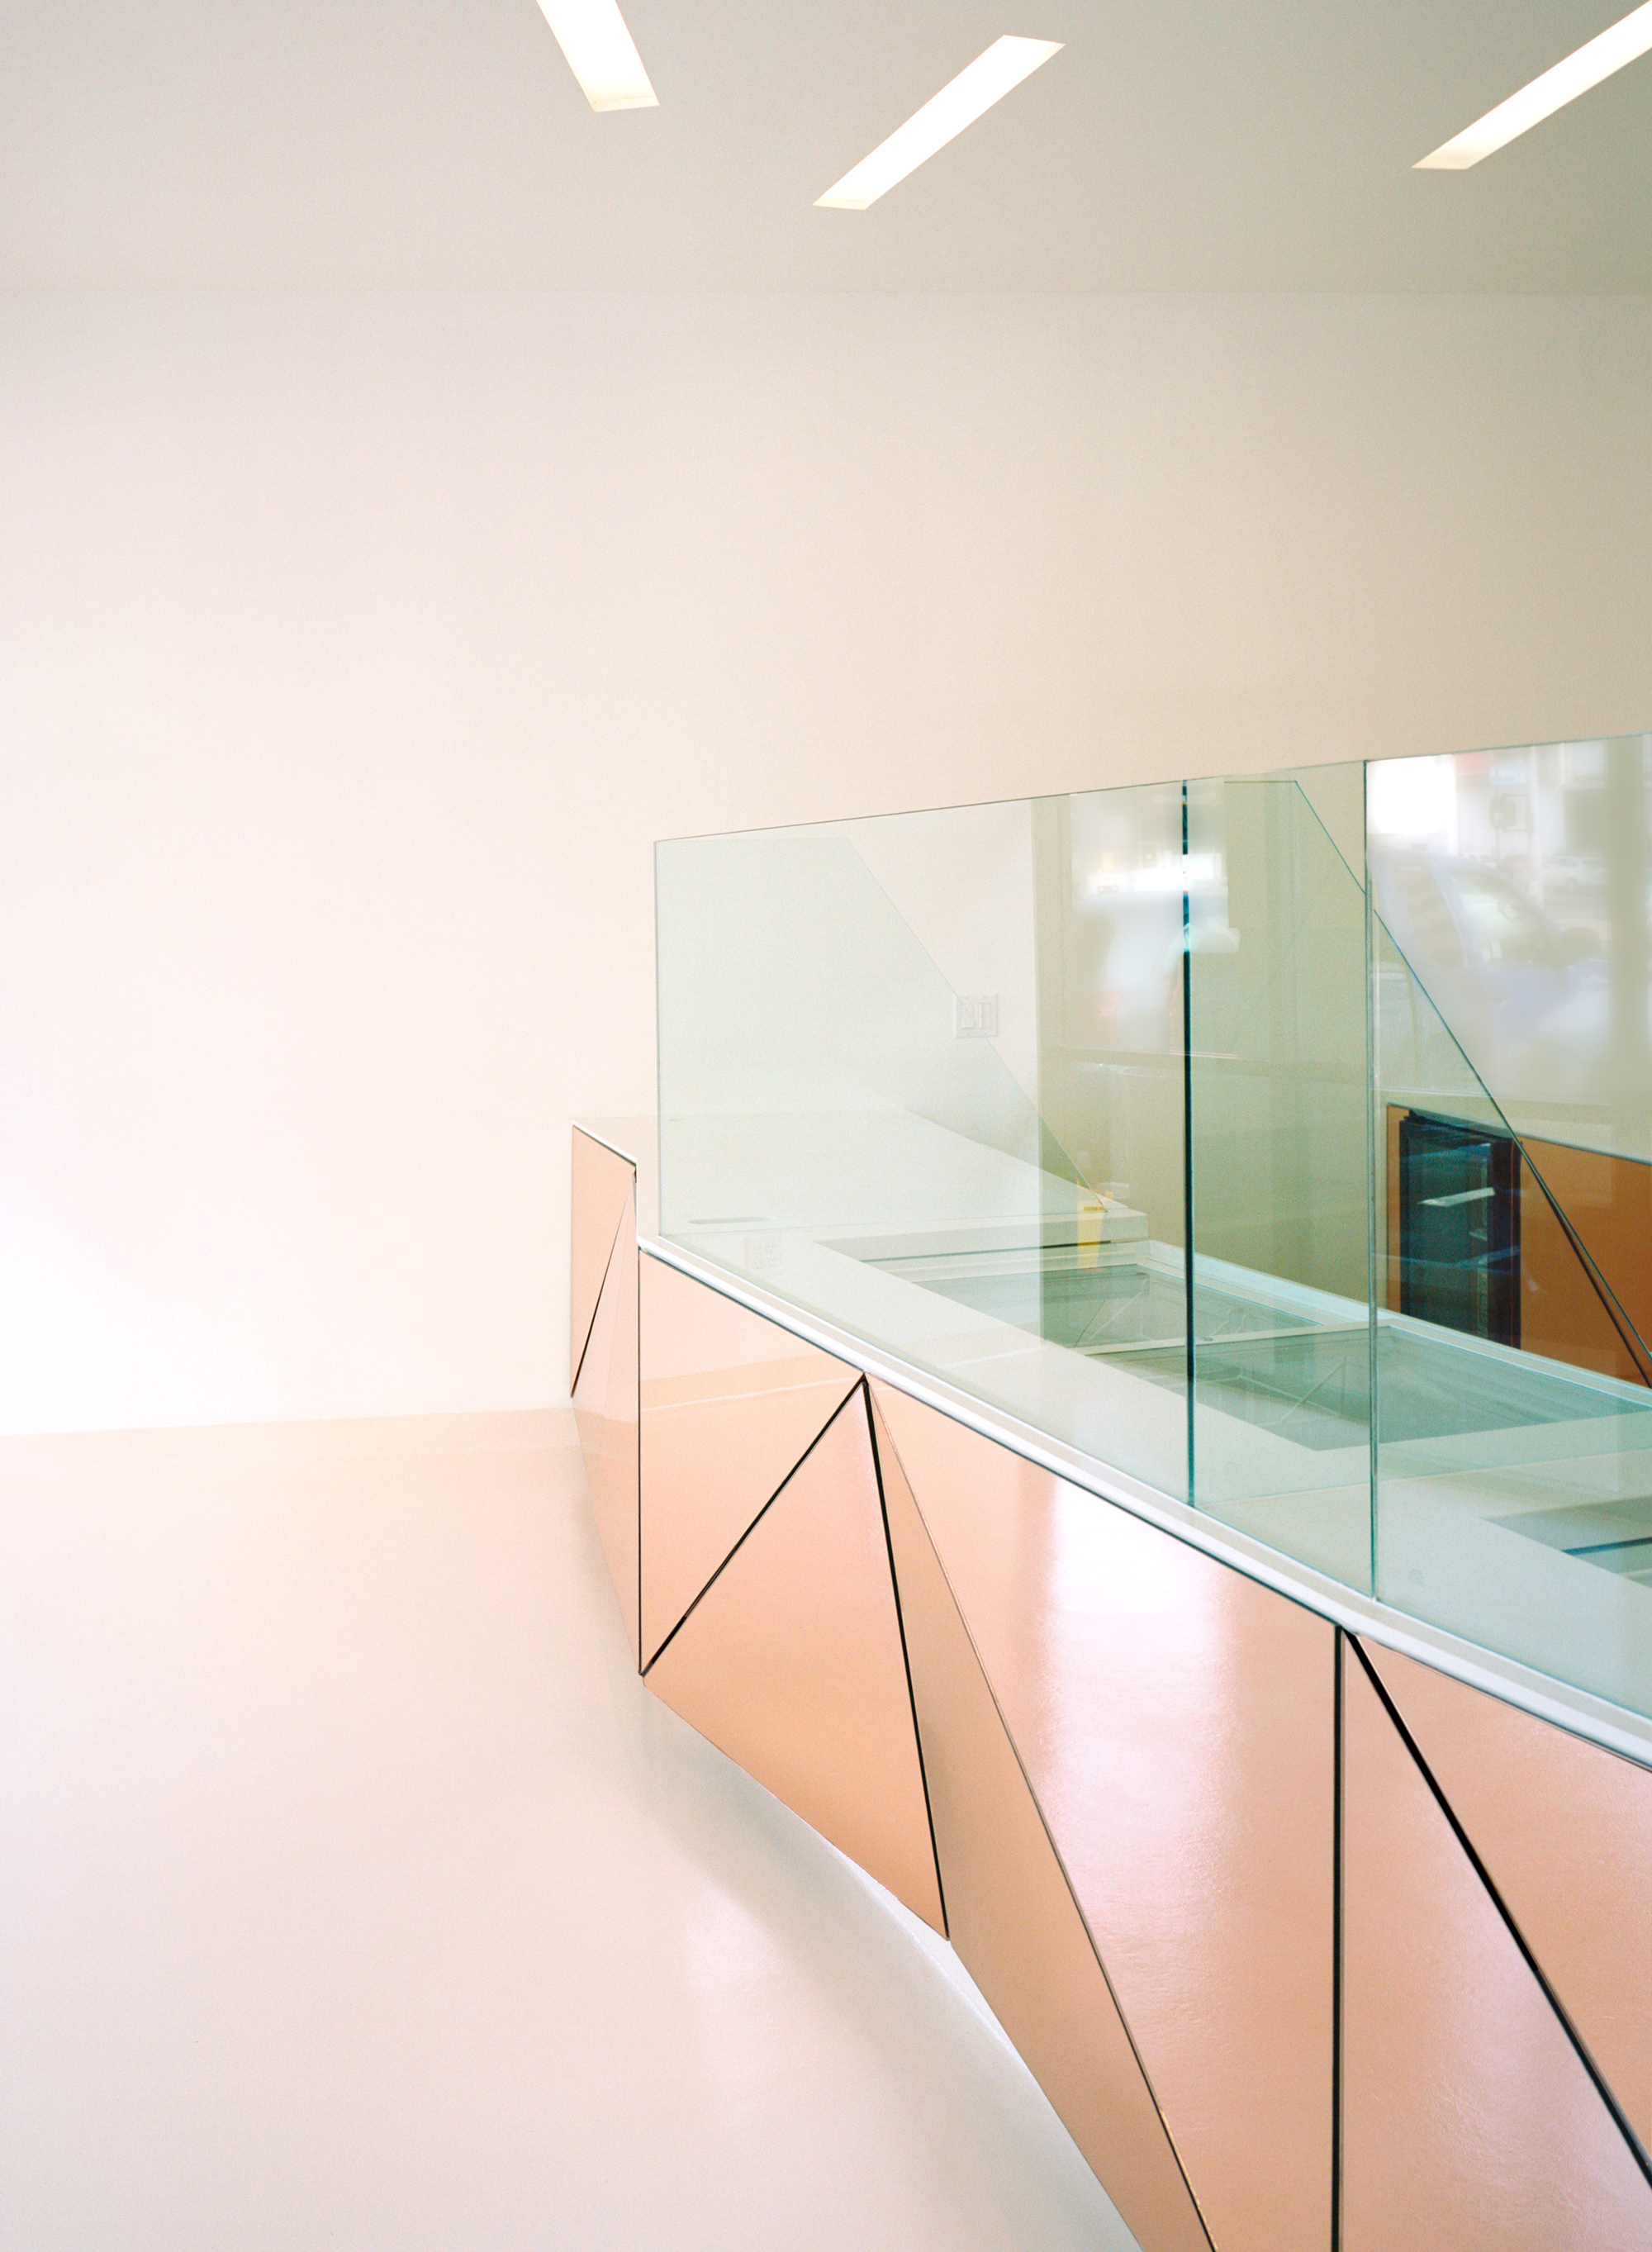 The floors were finished with a durable epoxy resin that give the space a soft, playful feel while be is easy maintain.